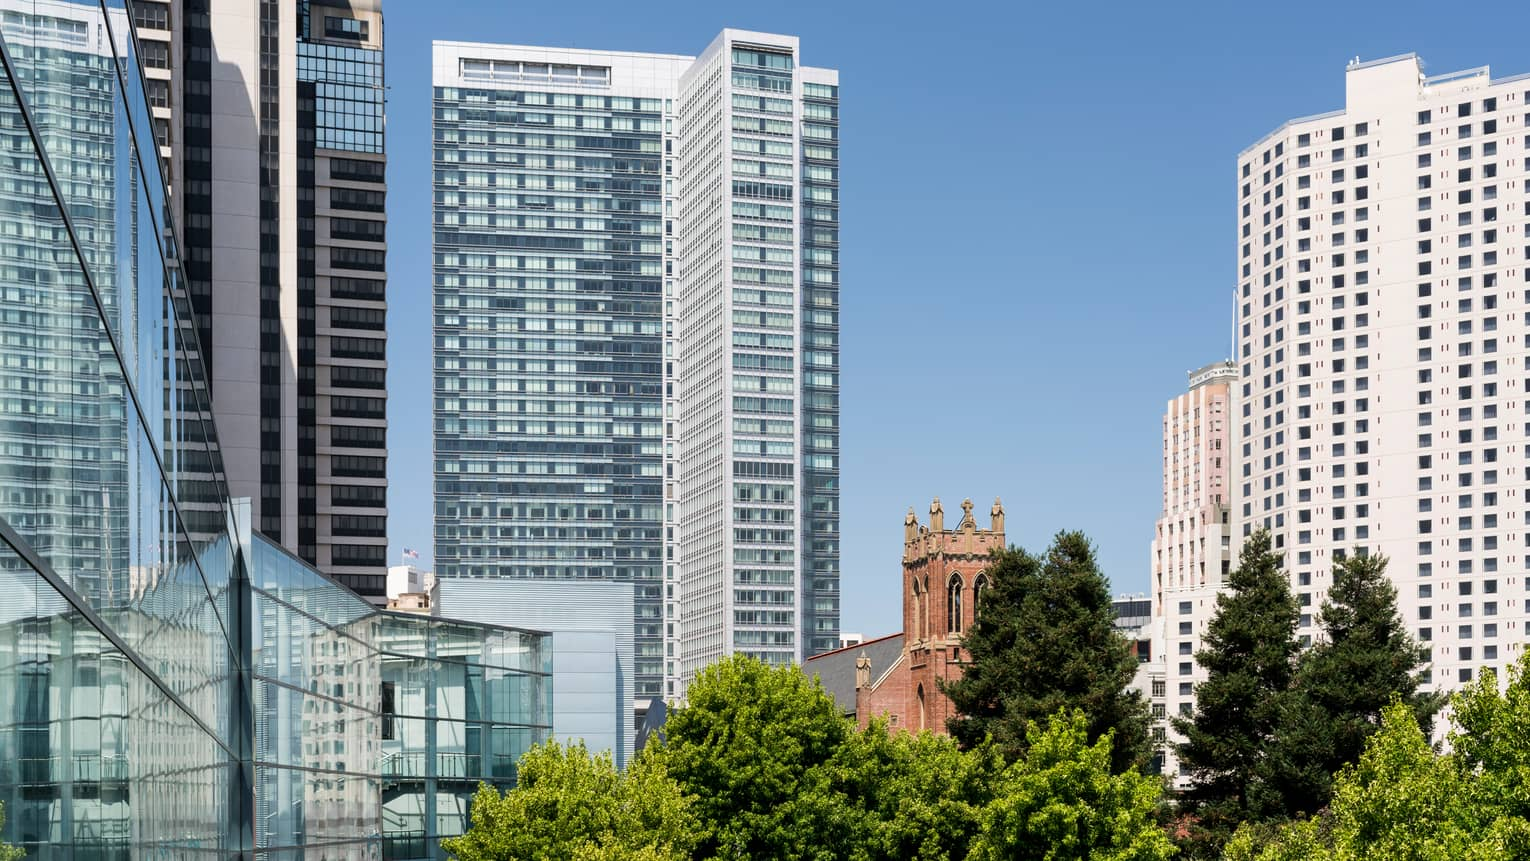 Outdoor view of tall buildings in San Francisco's Yerba Buena neighbourhood on sunny day